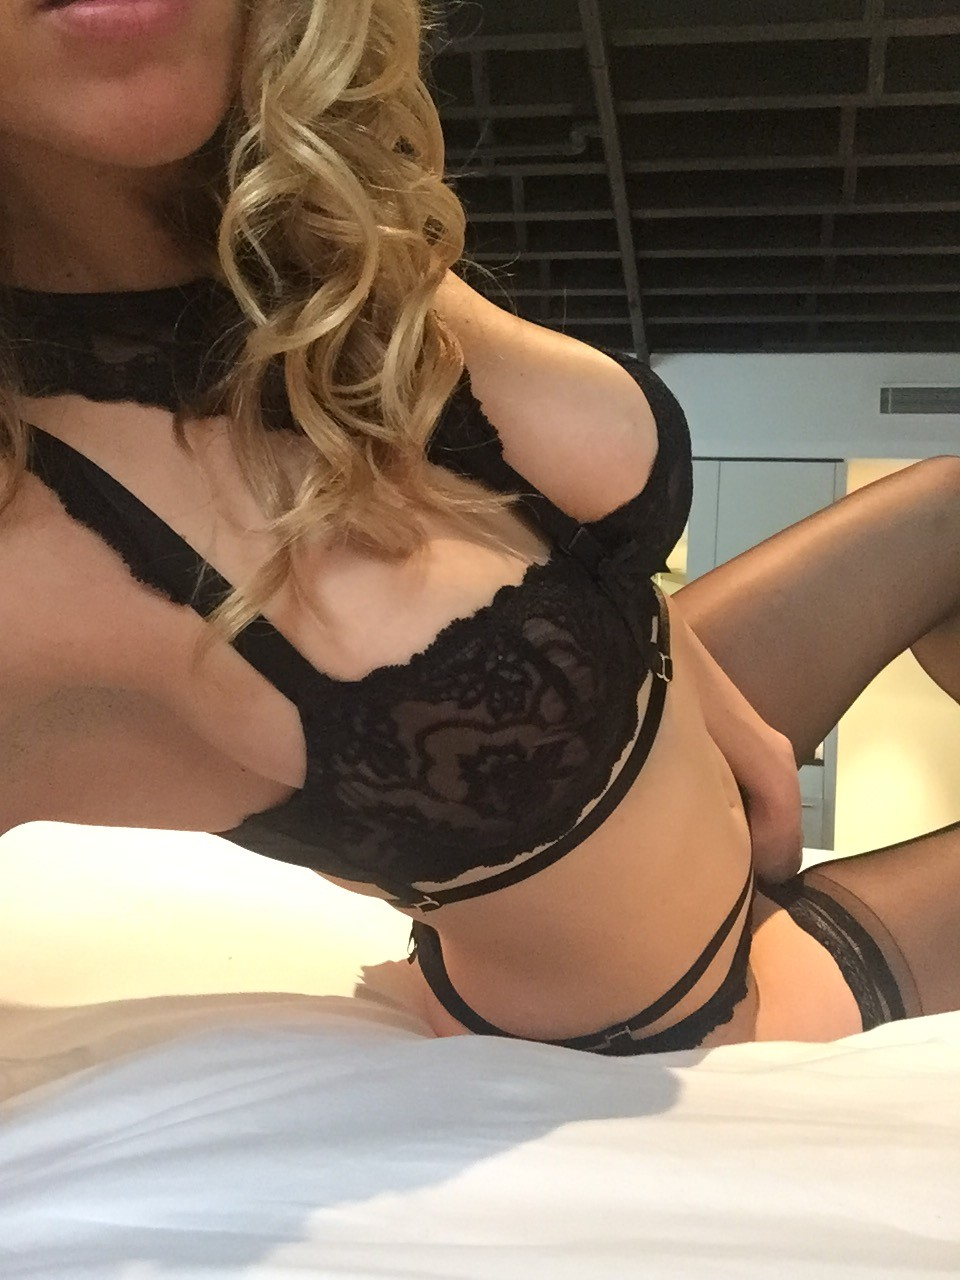 Jessica Luscious - Private Escort Sydney